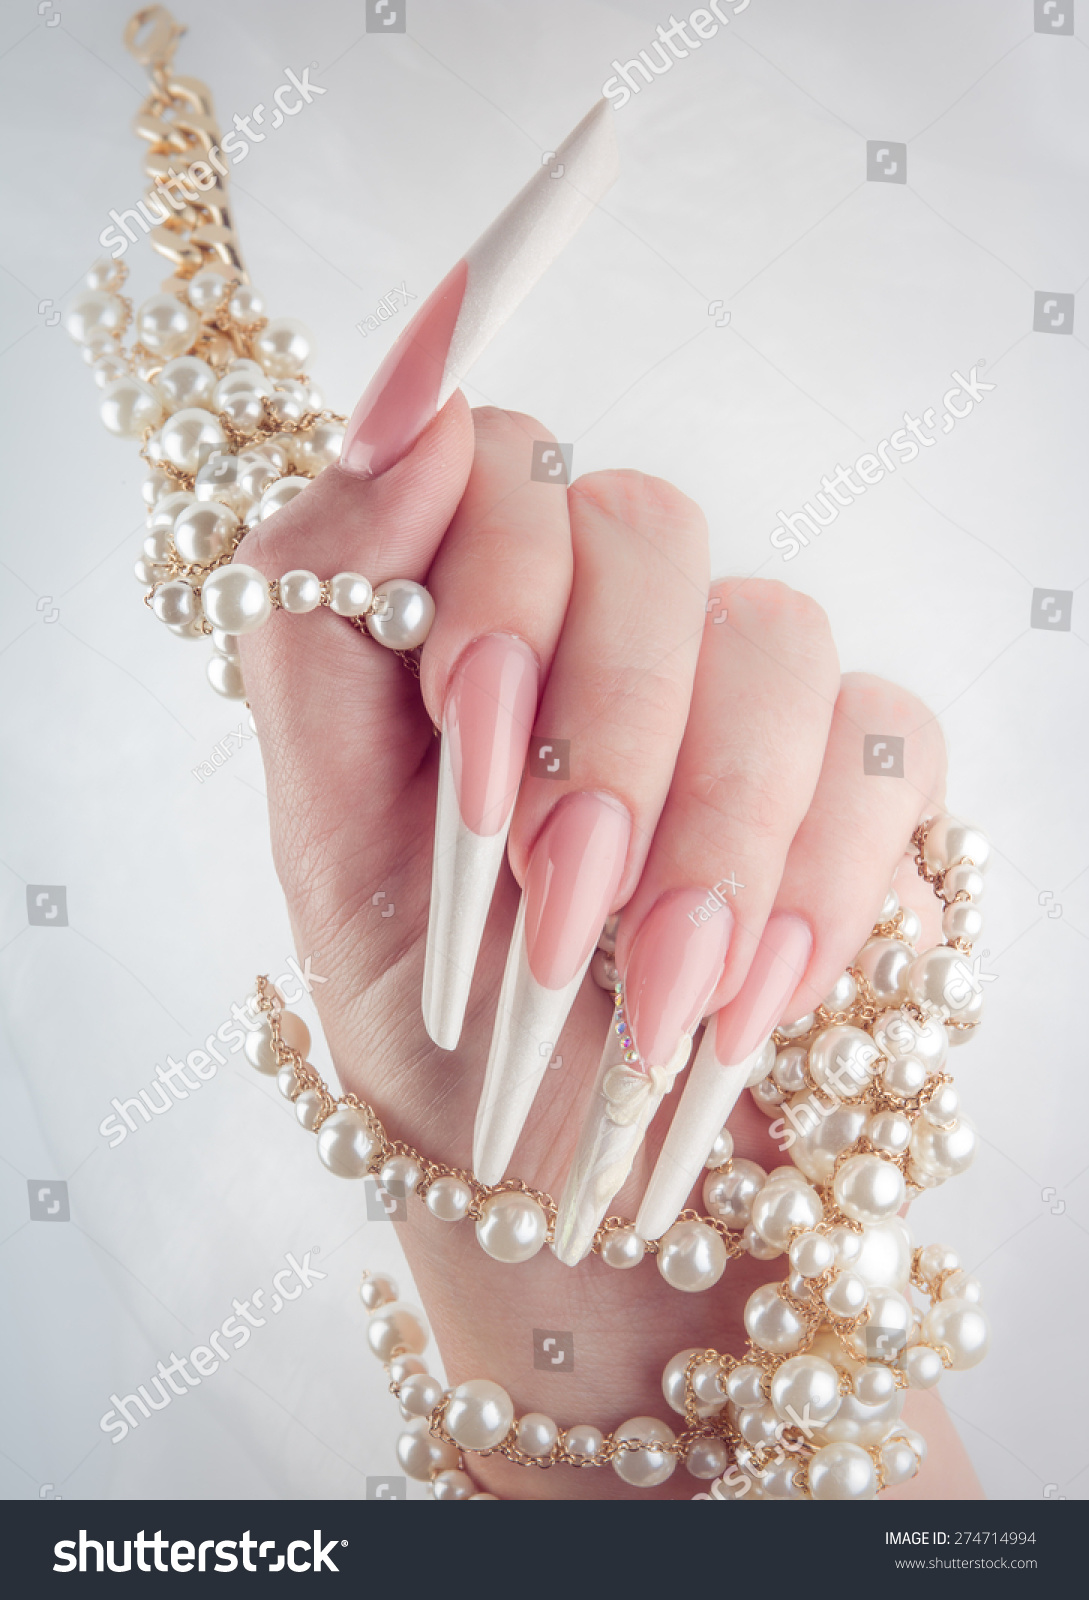 Painted Extreme Long Nails Hands Pearl Stock Photo (Royalty Free ...